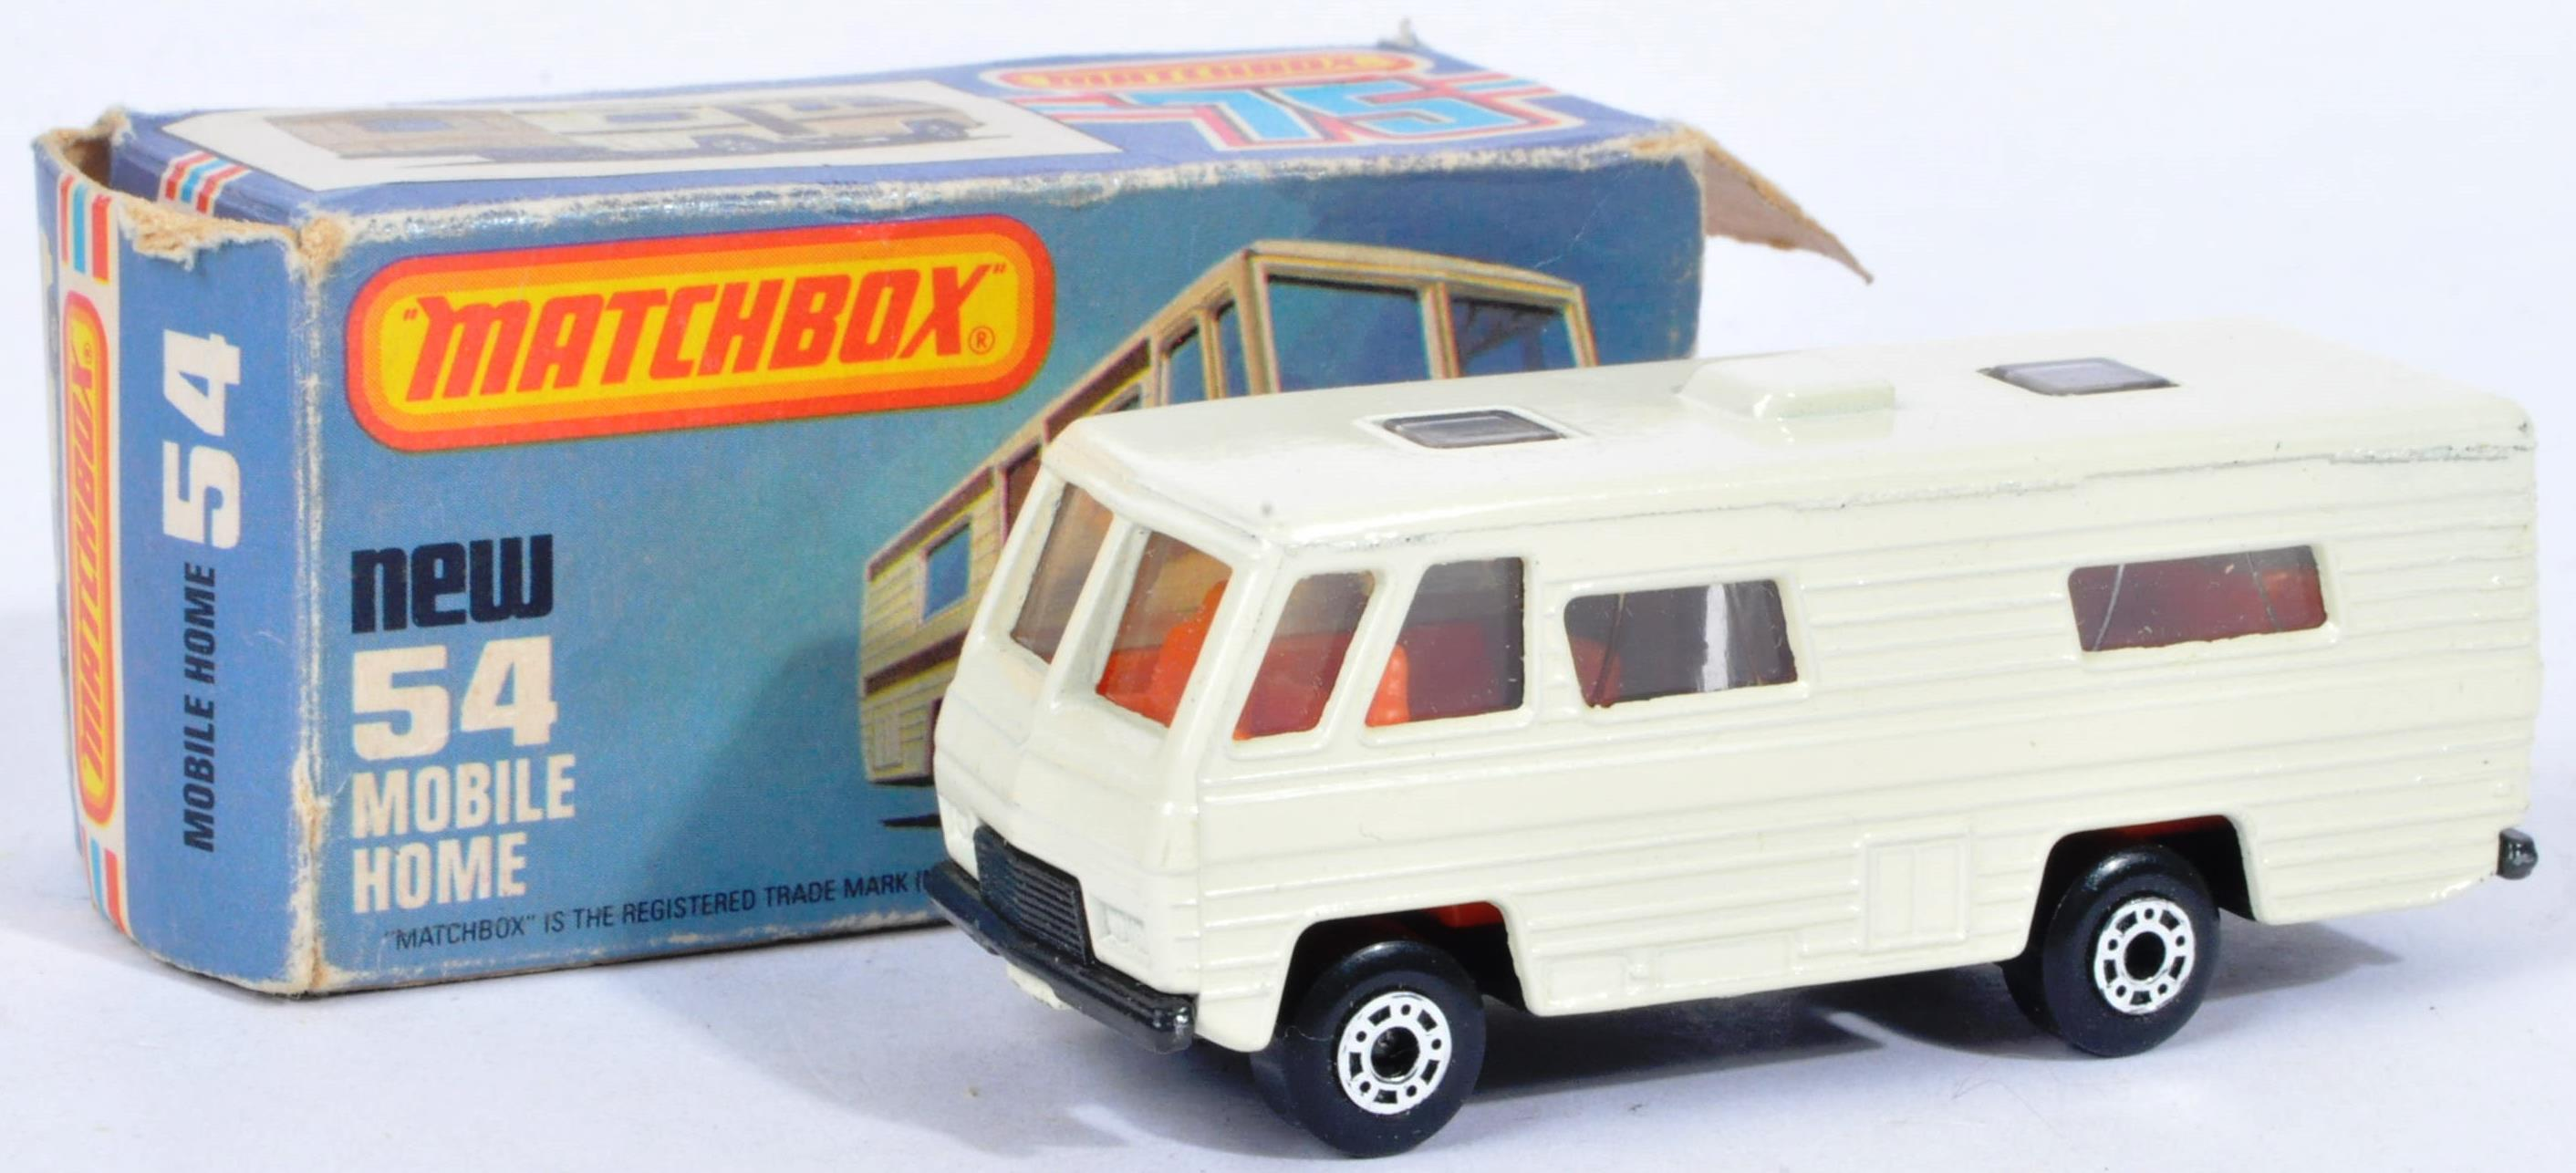 LARGE COLLECTION OF LESNEY MATCHBOX DIECAST MODELS - Image 5 of 8